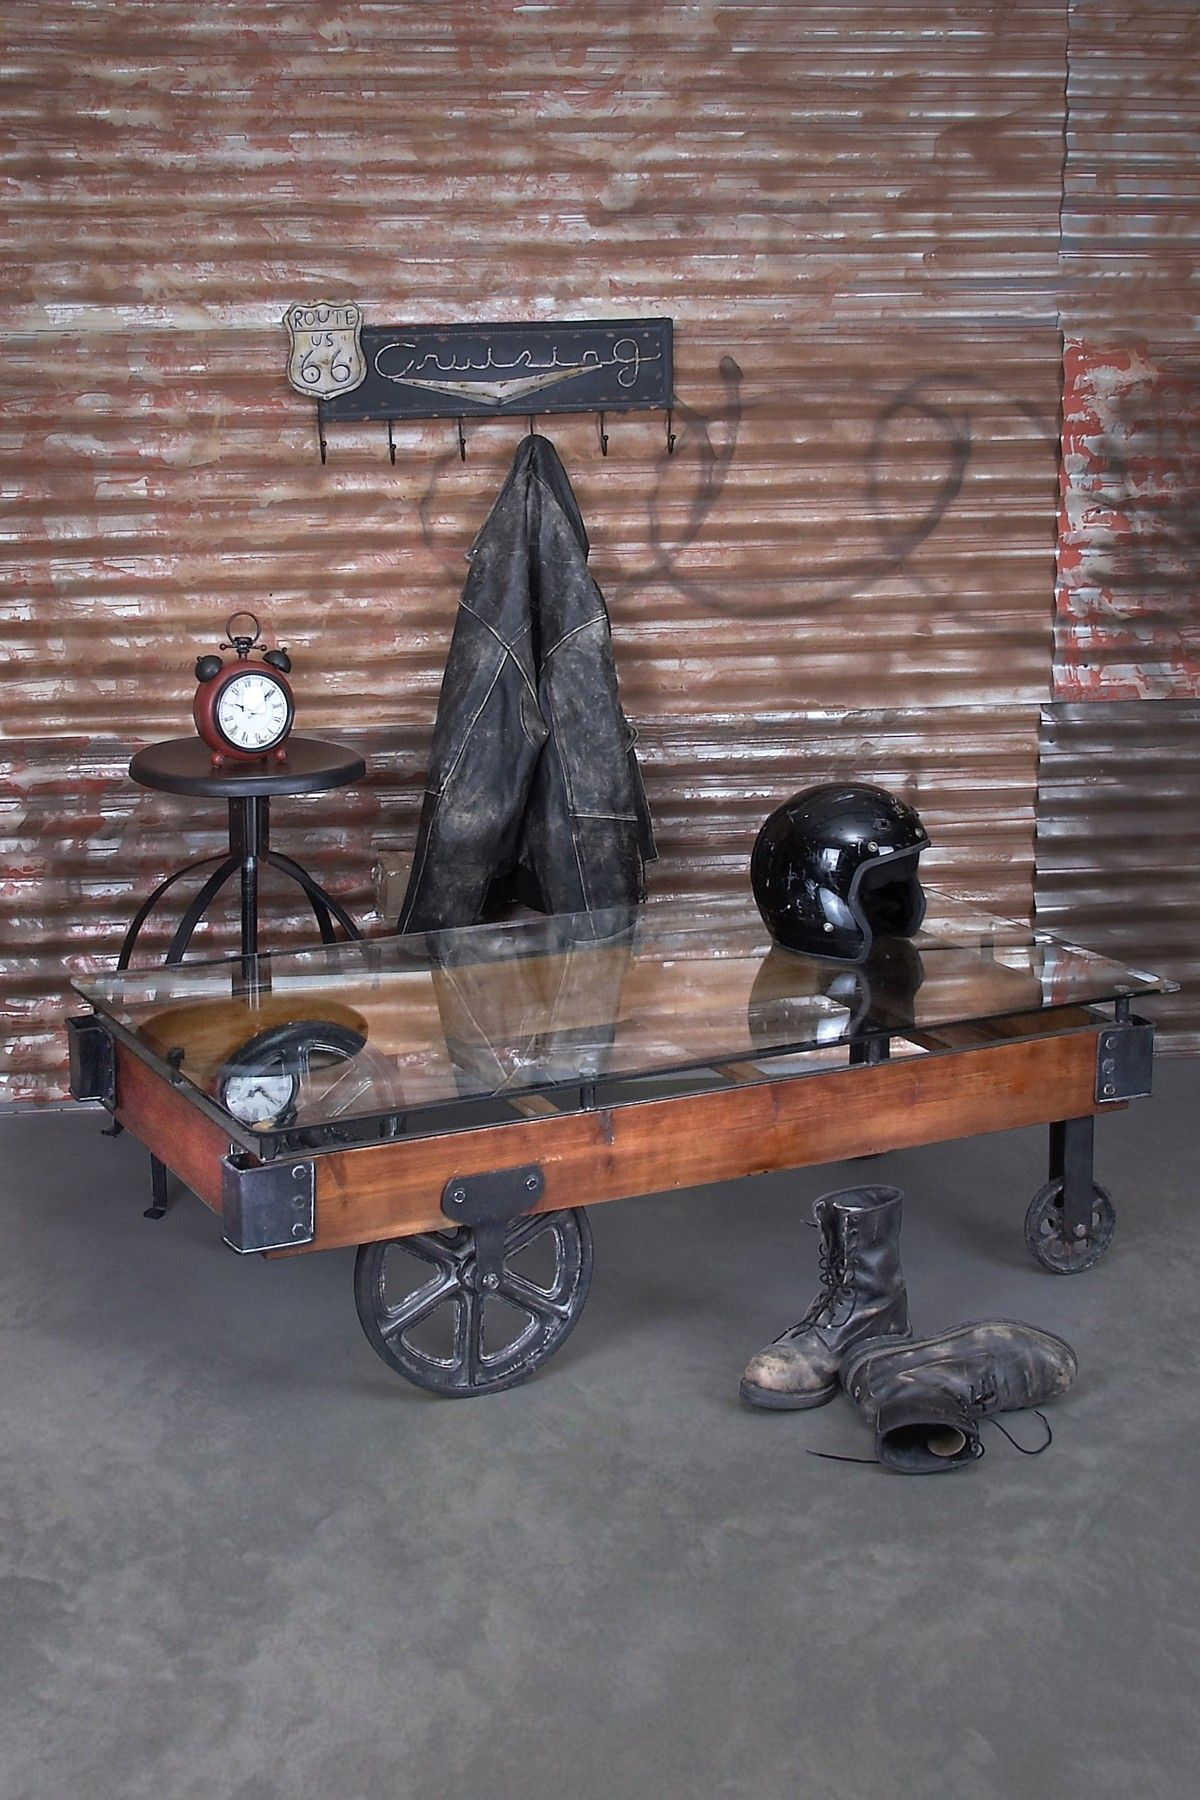 Willow Row Wood Glass Cart Coffee Table Hautelook Vintage Industrial Decor Industrial Decor Decor